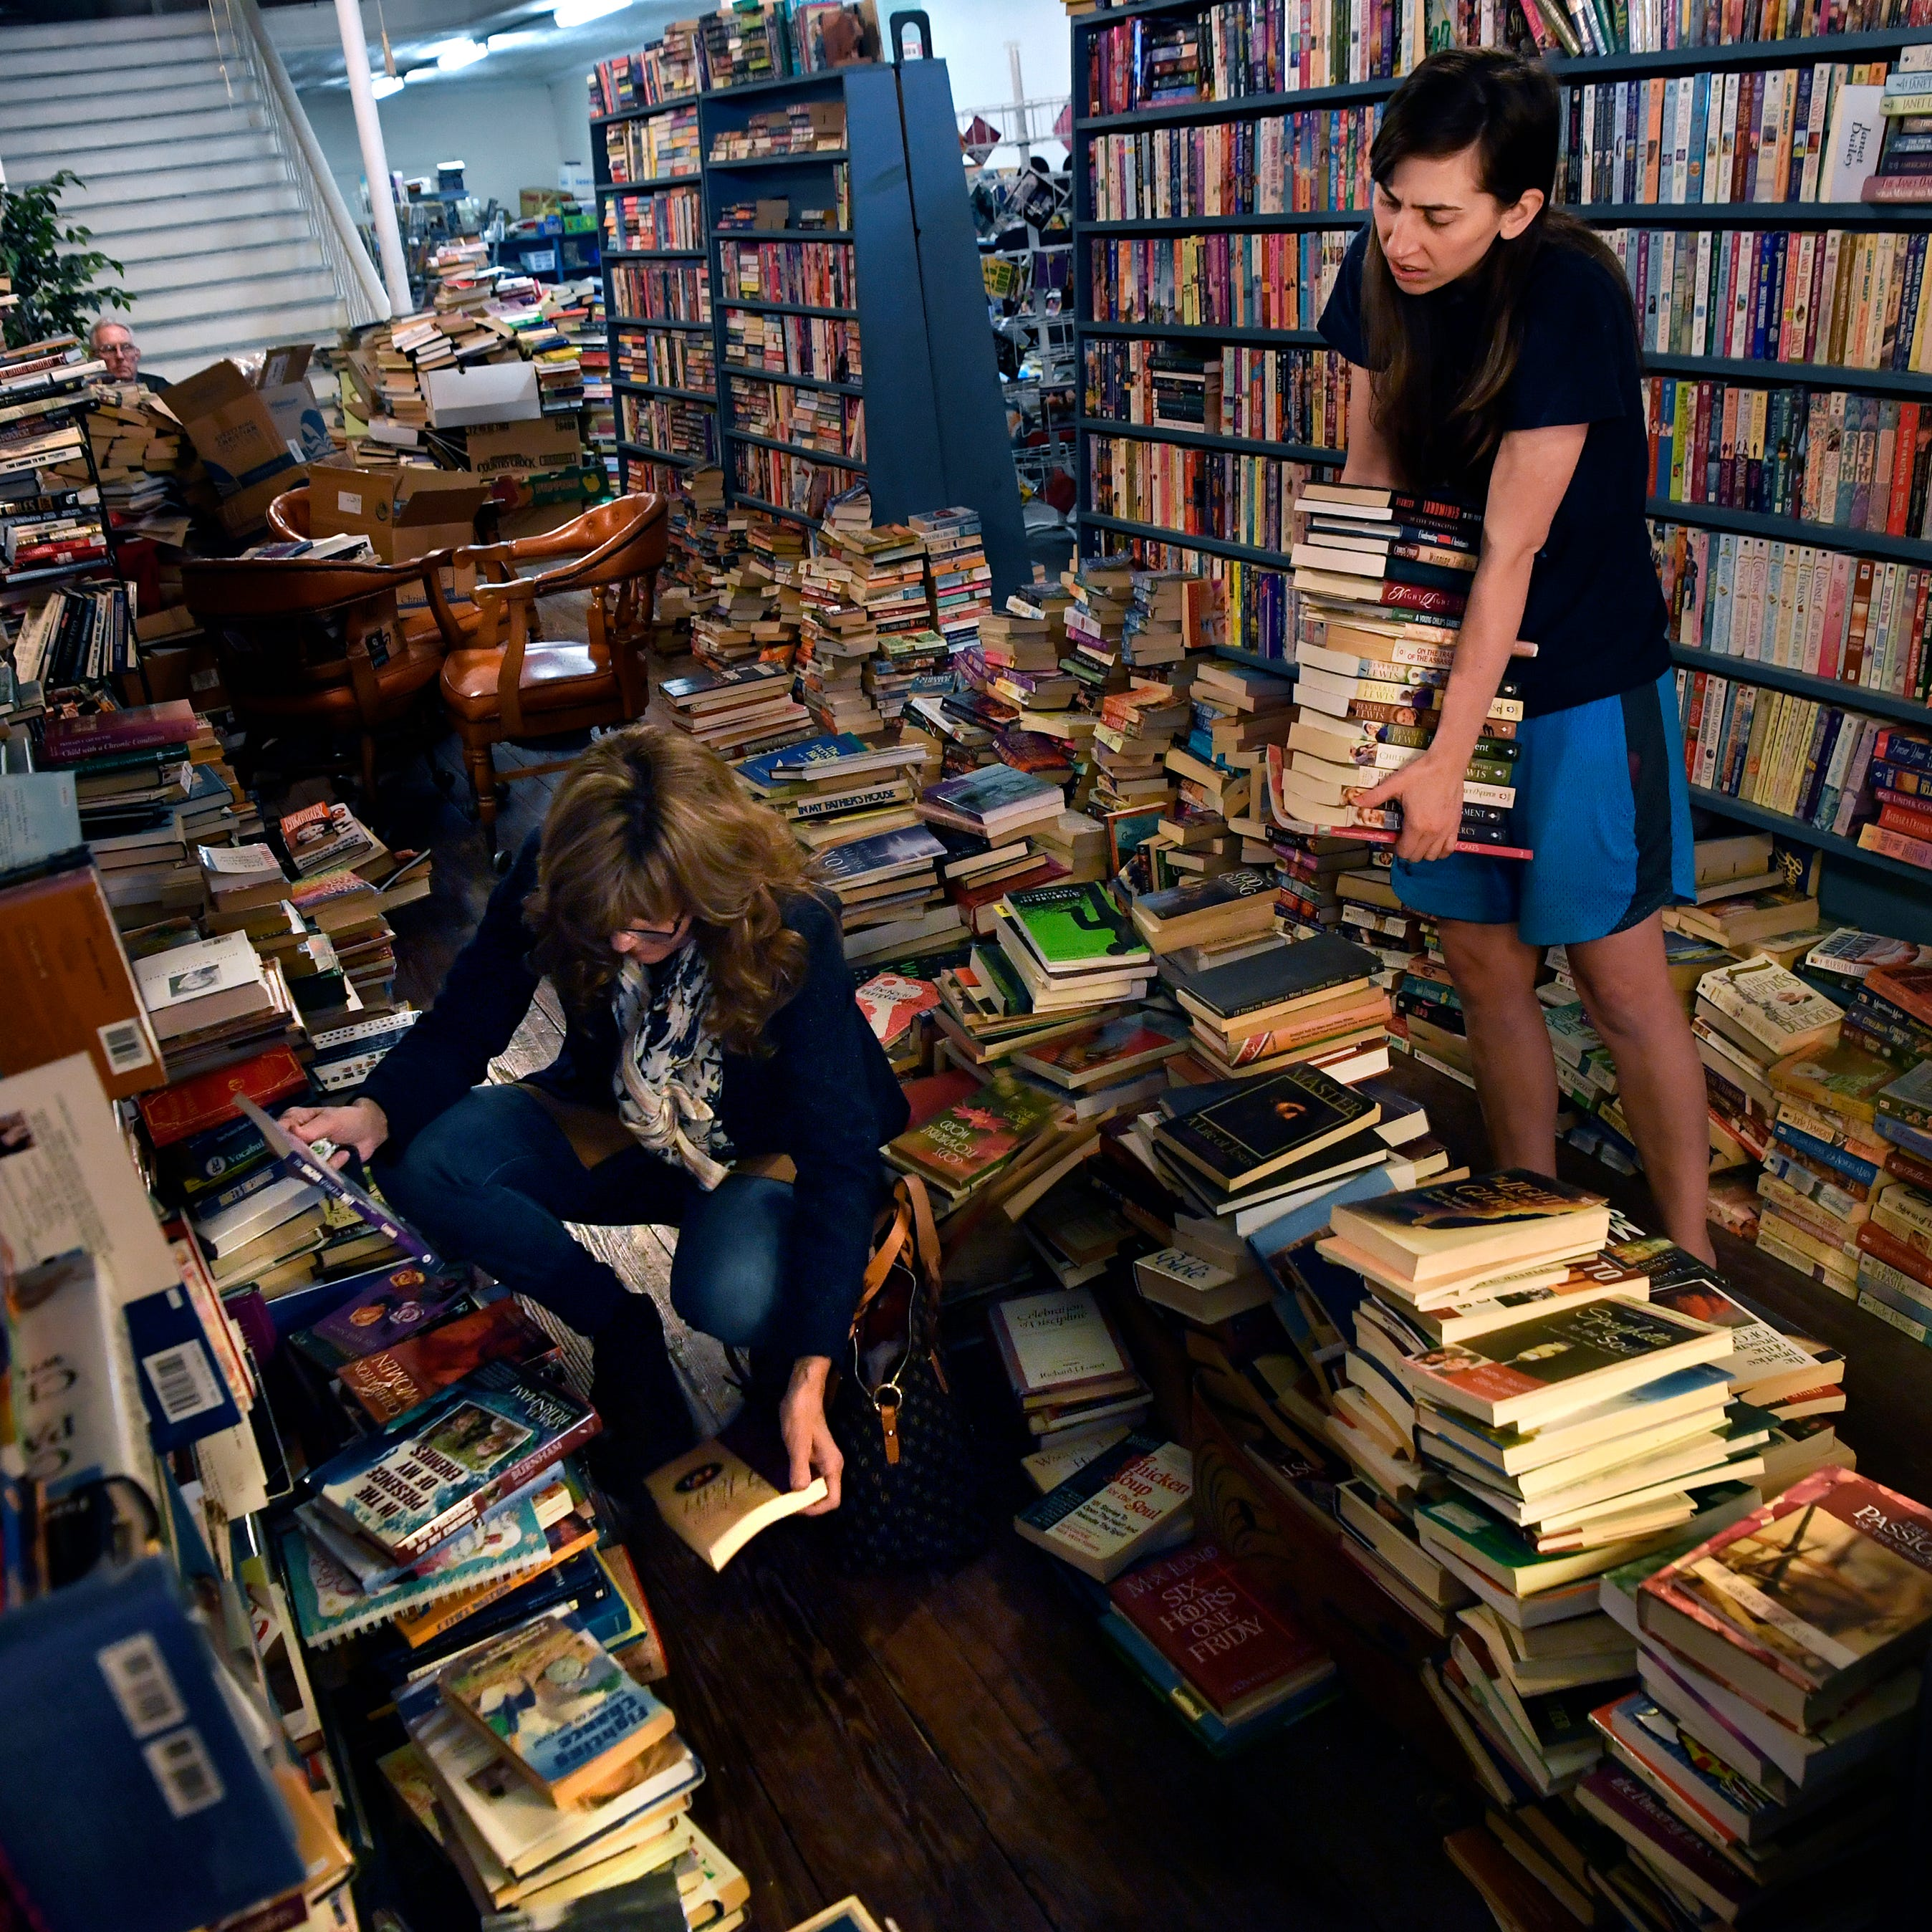 'Junkin' for books': End of chapter for Haskell store